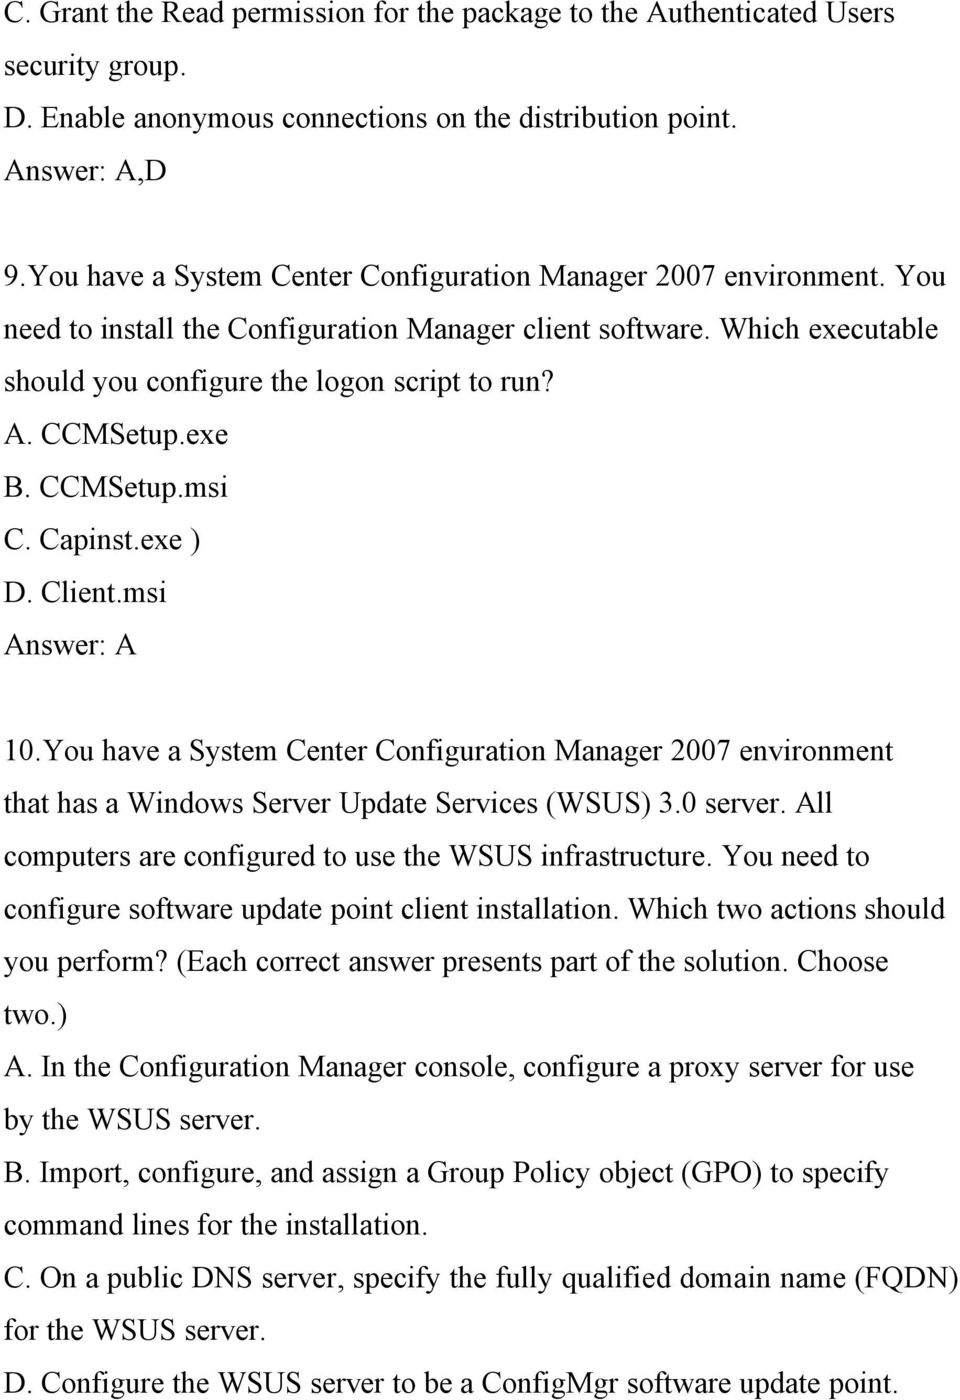 CCMSetup.exe B. CCMSetup.msi C. Capinst.exe ) D. Client.msi Answer: A 10.You have a System Center Configuration Manager 2007 environment that has a Windows Server Update Services (WSUS) 3.0 server.